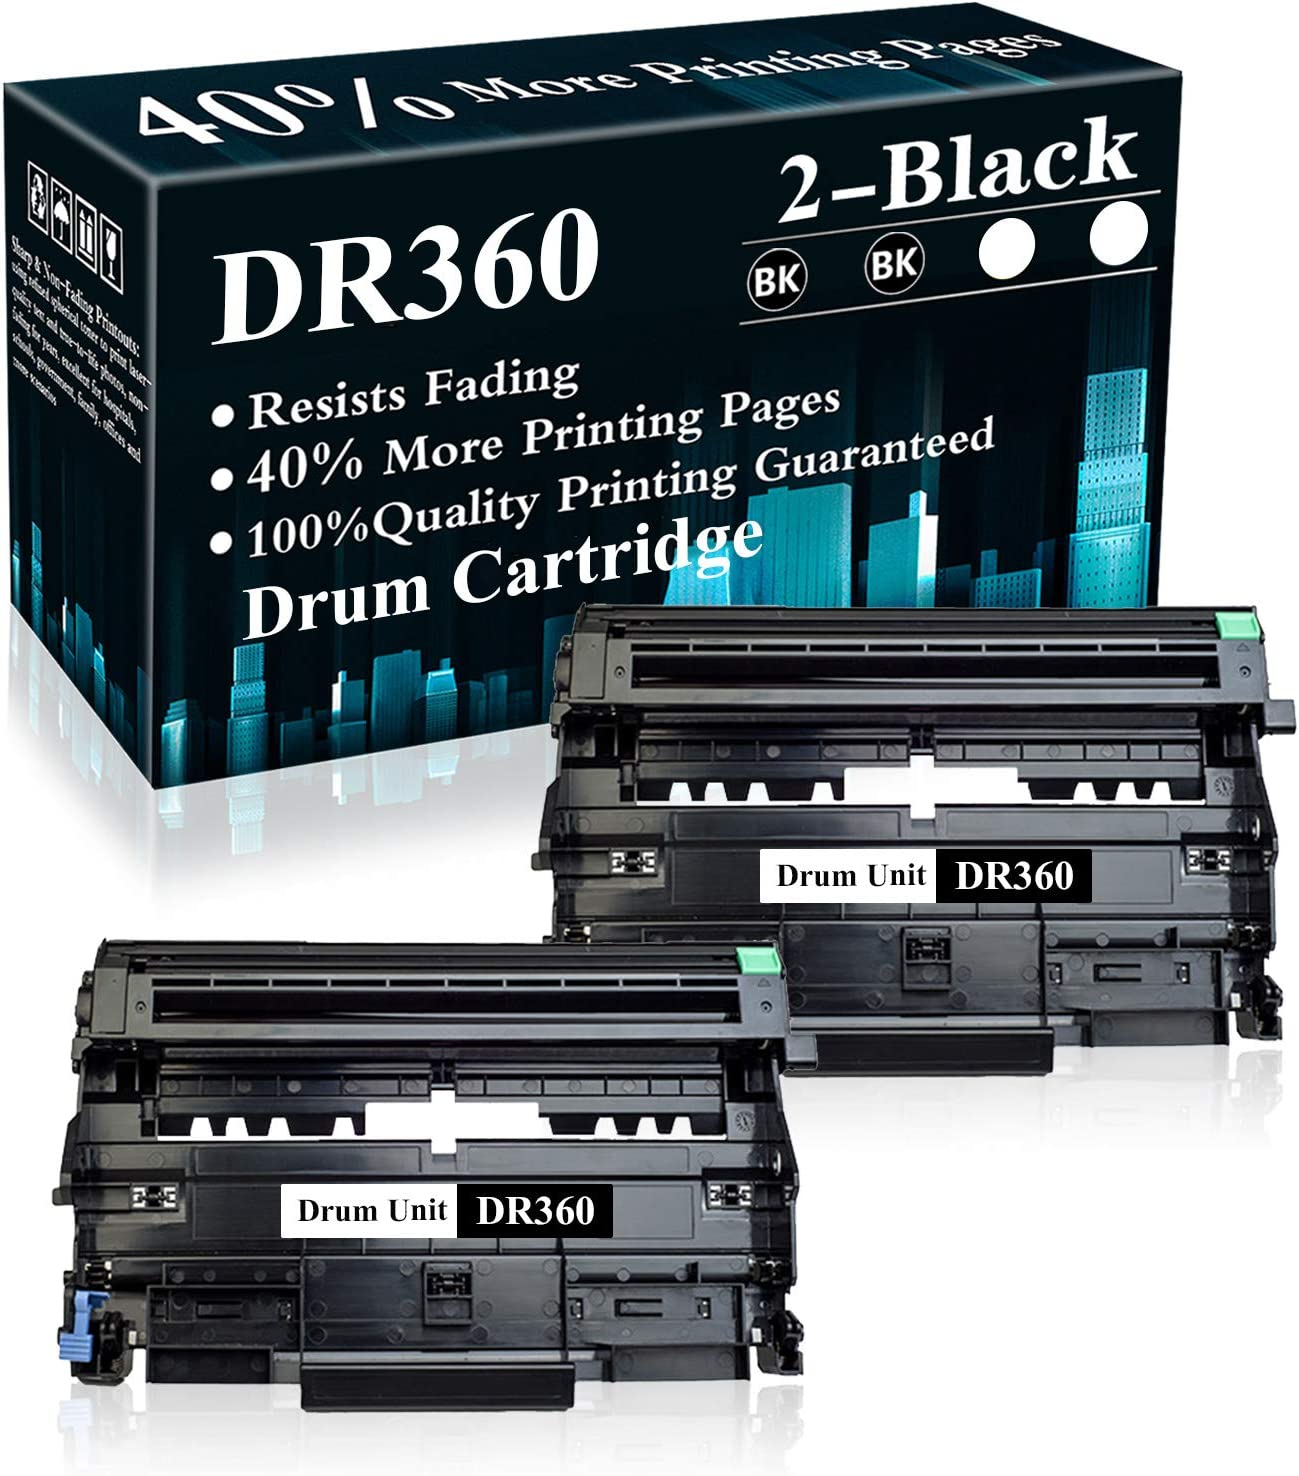 2 Pack DR360 Black Drum Unit Replacement for Brother DCP-7030 7040 7045N HL-2120 2150 2150N 2170 2170W MFC-7040 7320 7345N 7440 7440N 7840 7840W Printer,Sold by TopInk